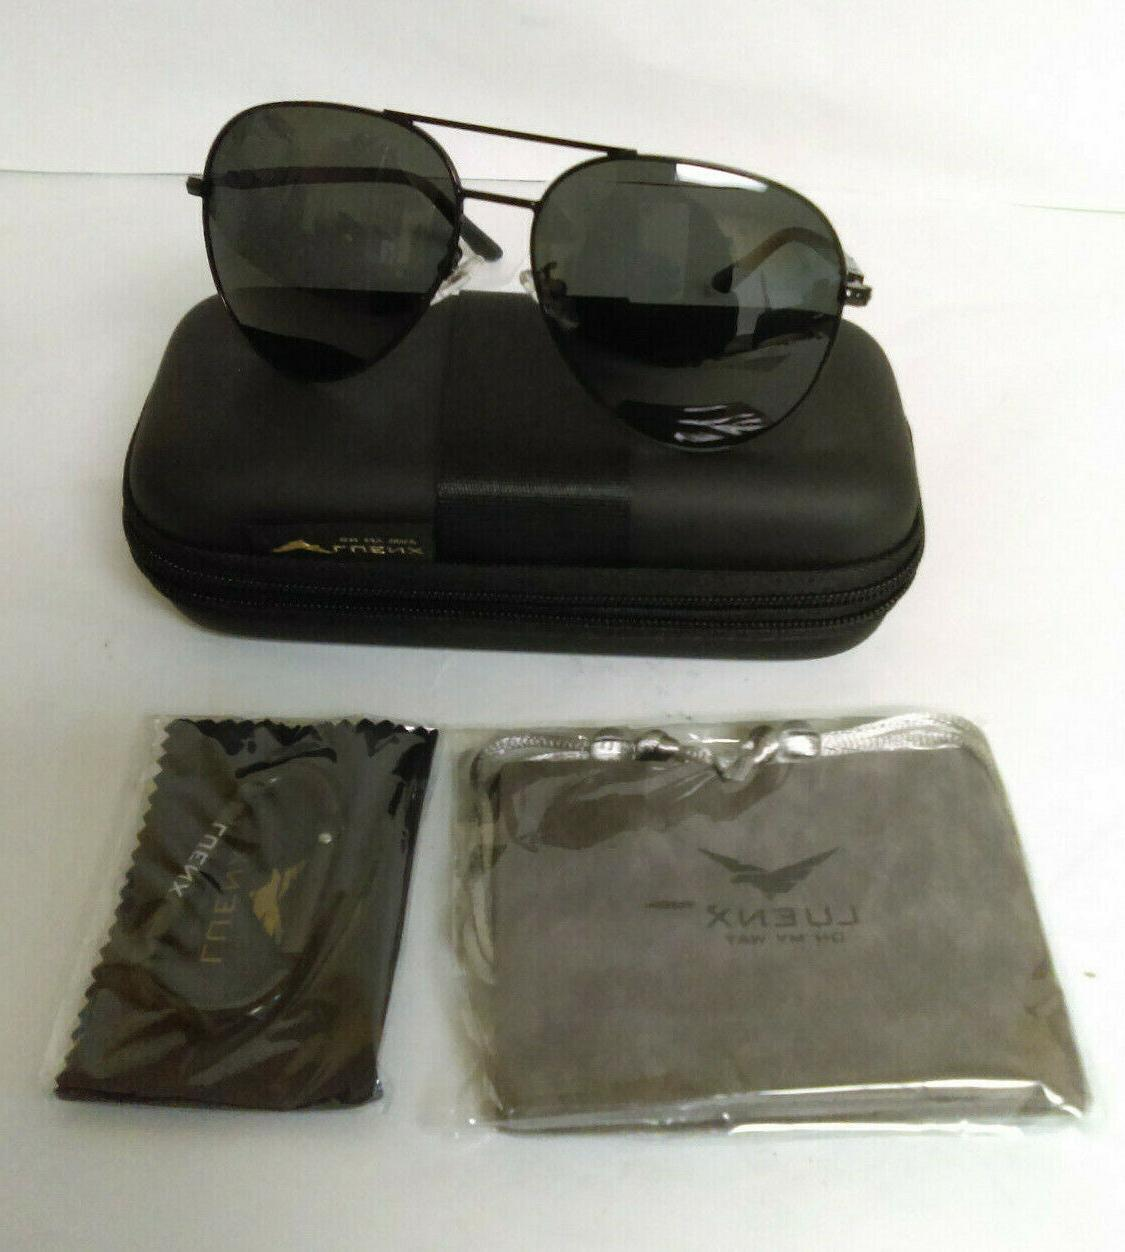 Mens Sunglasses: with